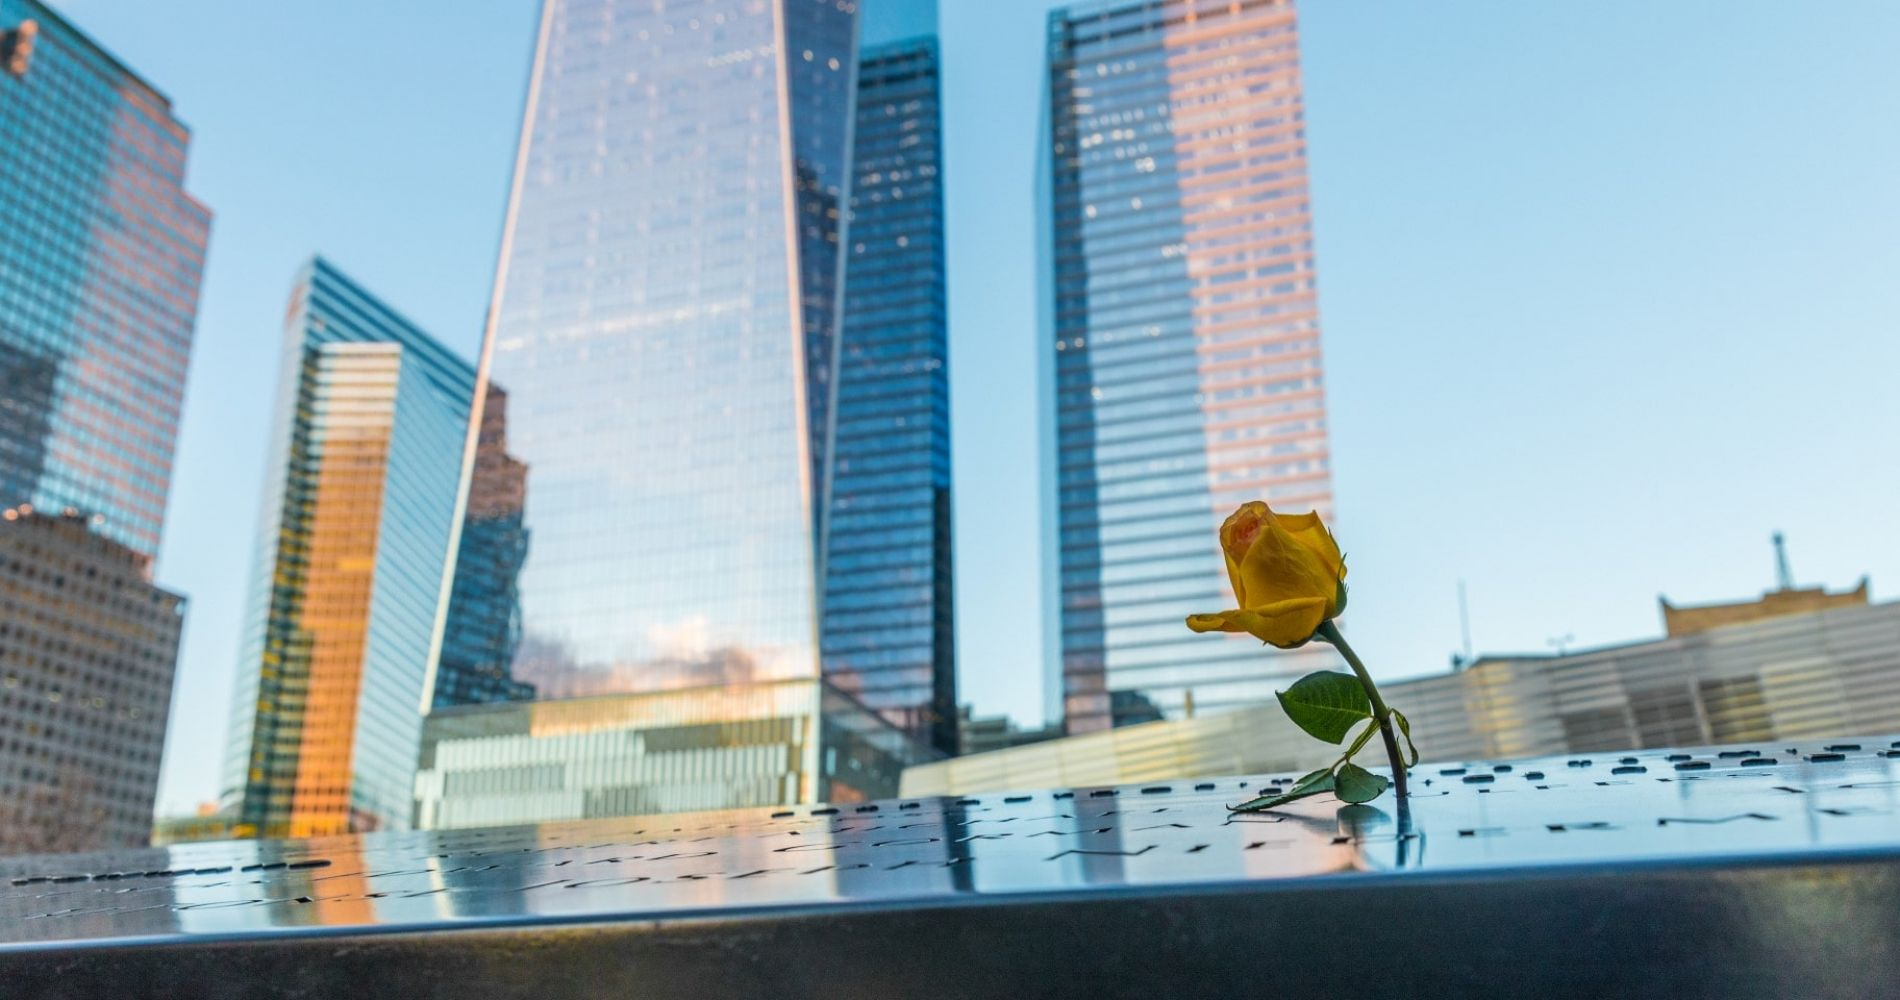 Best Museums of New York including 9/11 Memorial and Museum